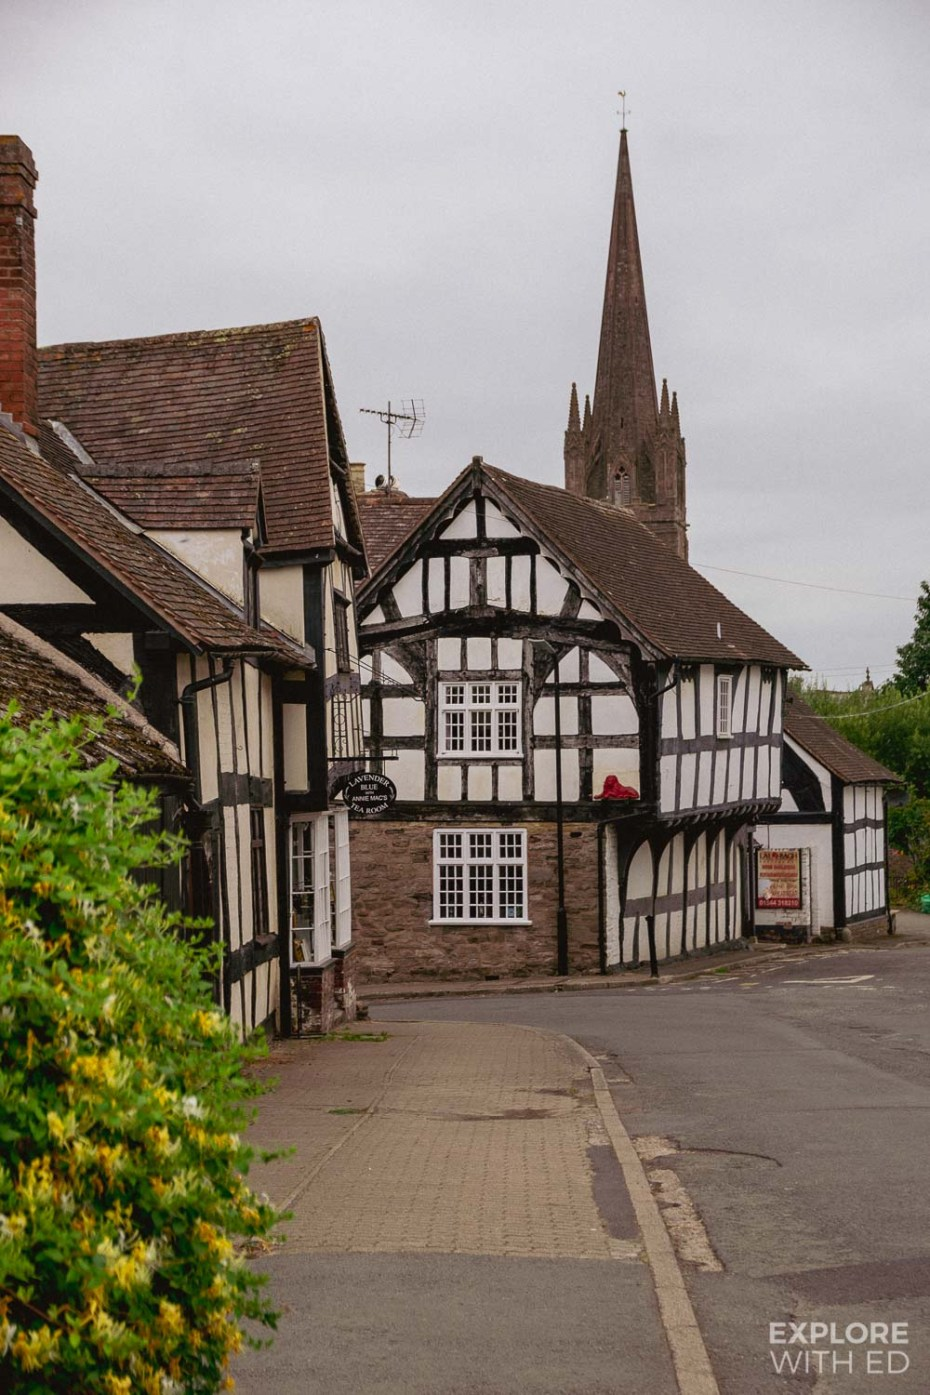 Weobley Broad Street view with Church spire